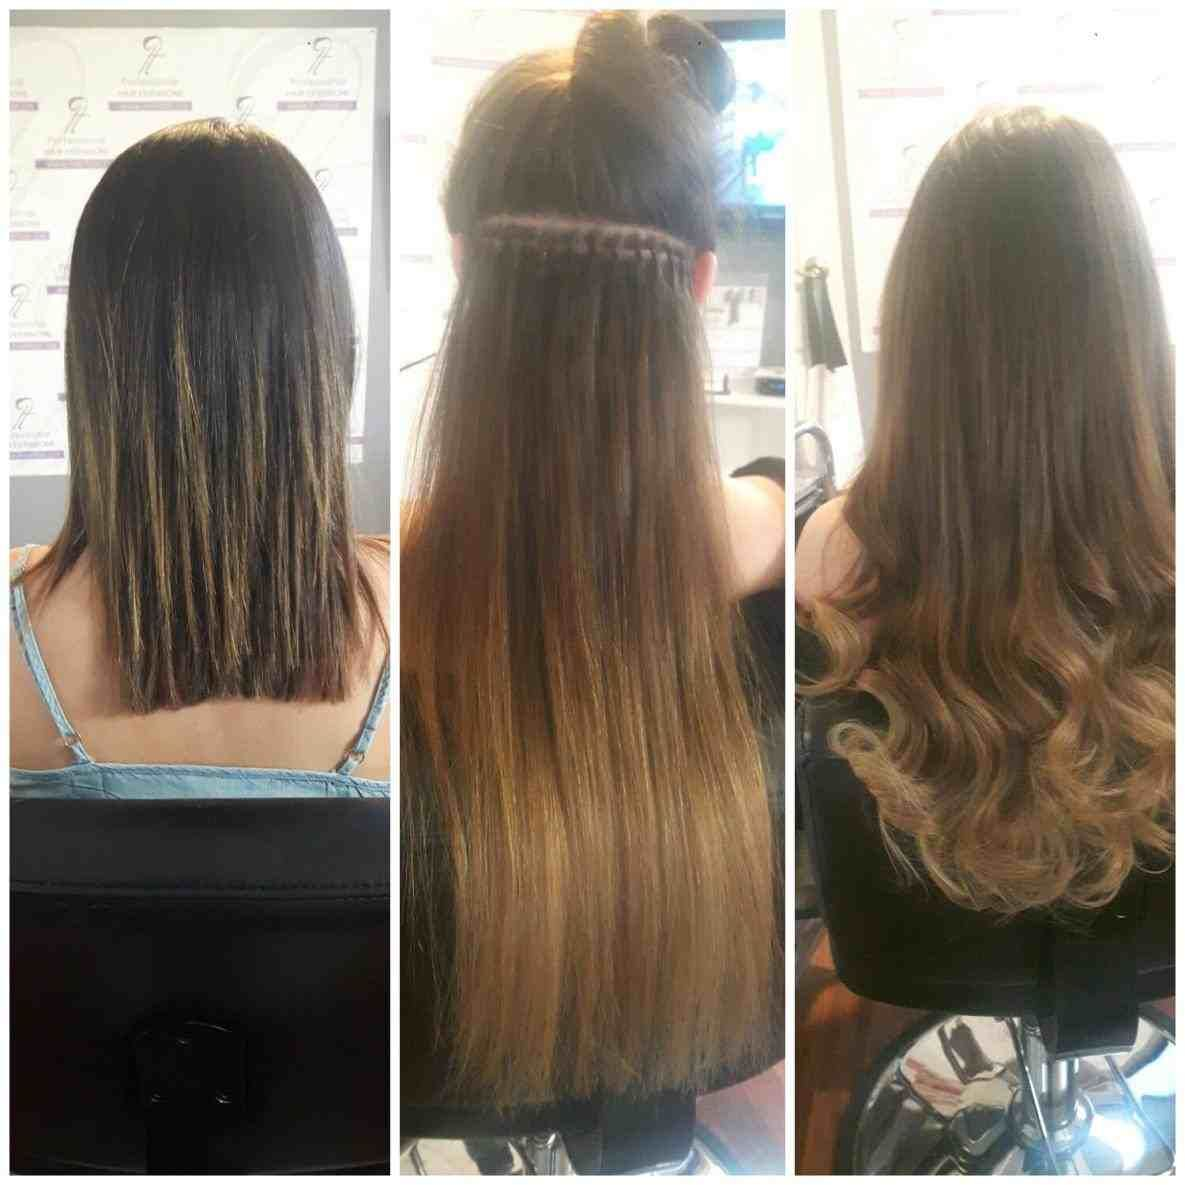 30 inch hair extensions before and after | hair stylist and